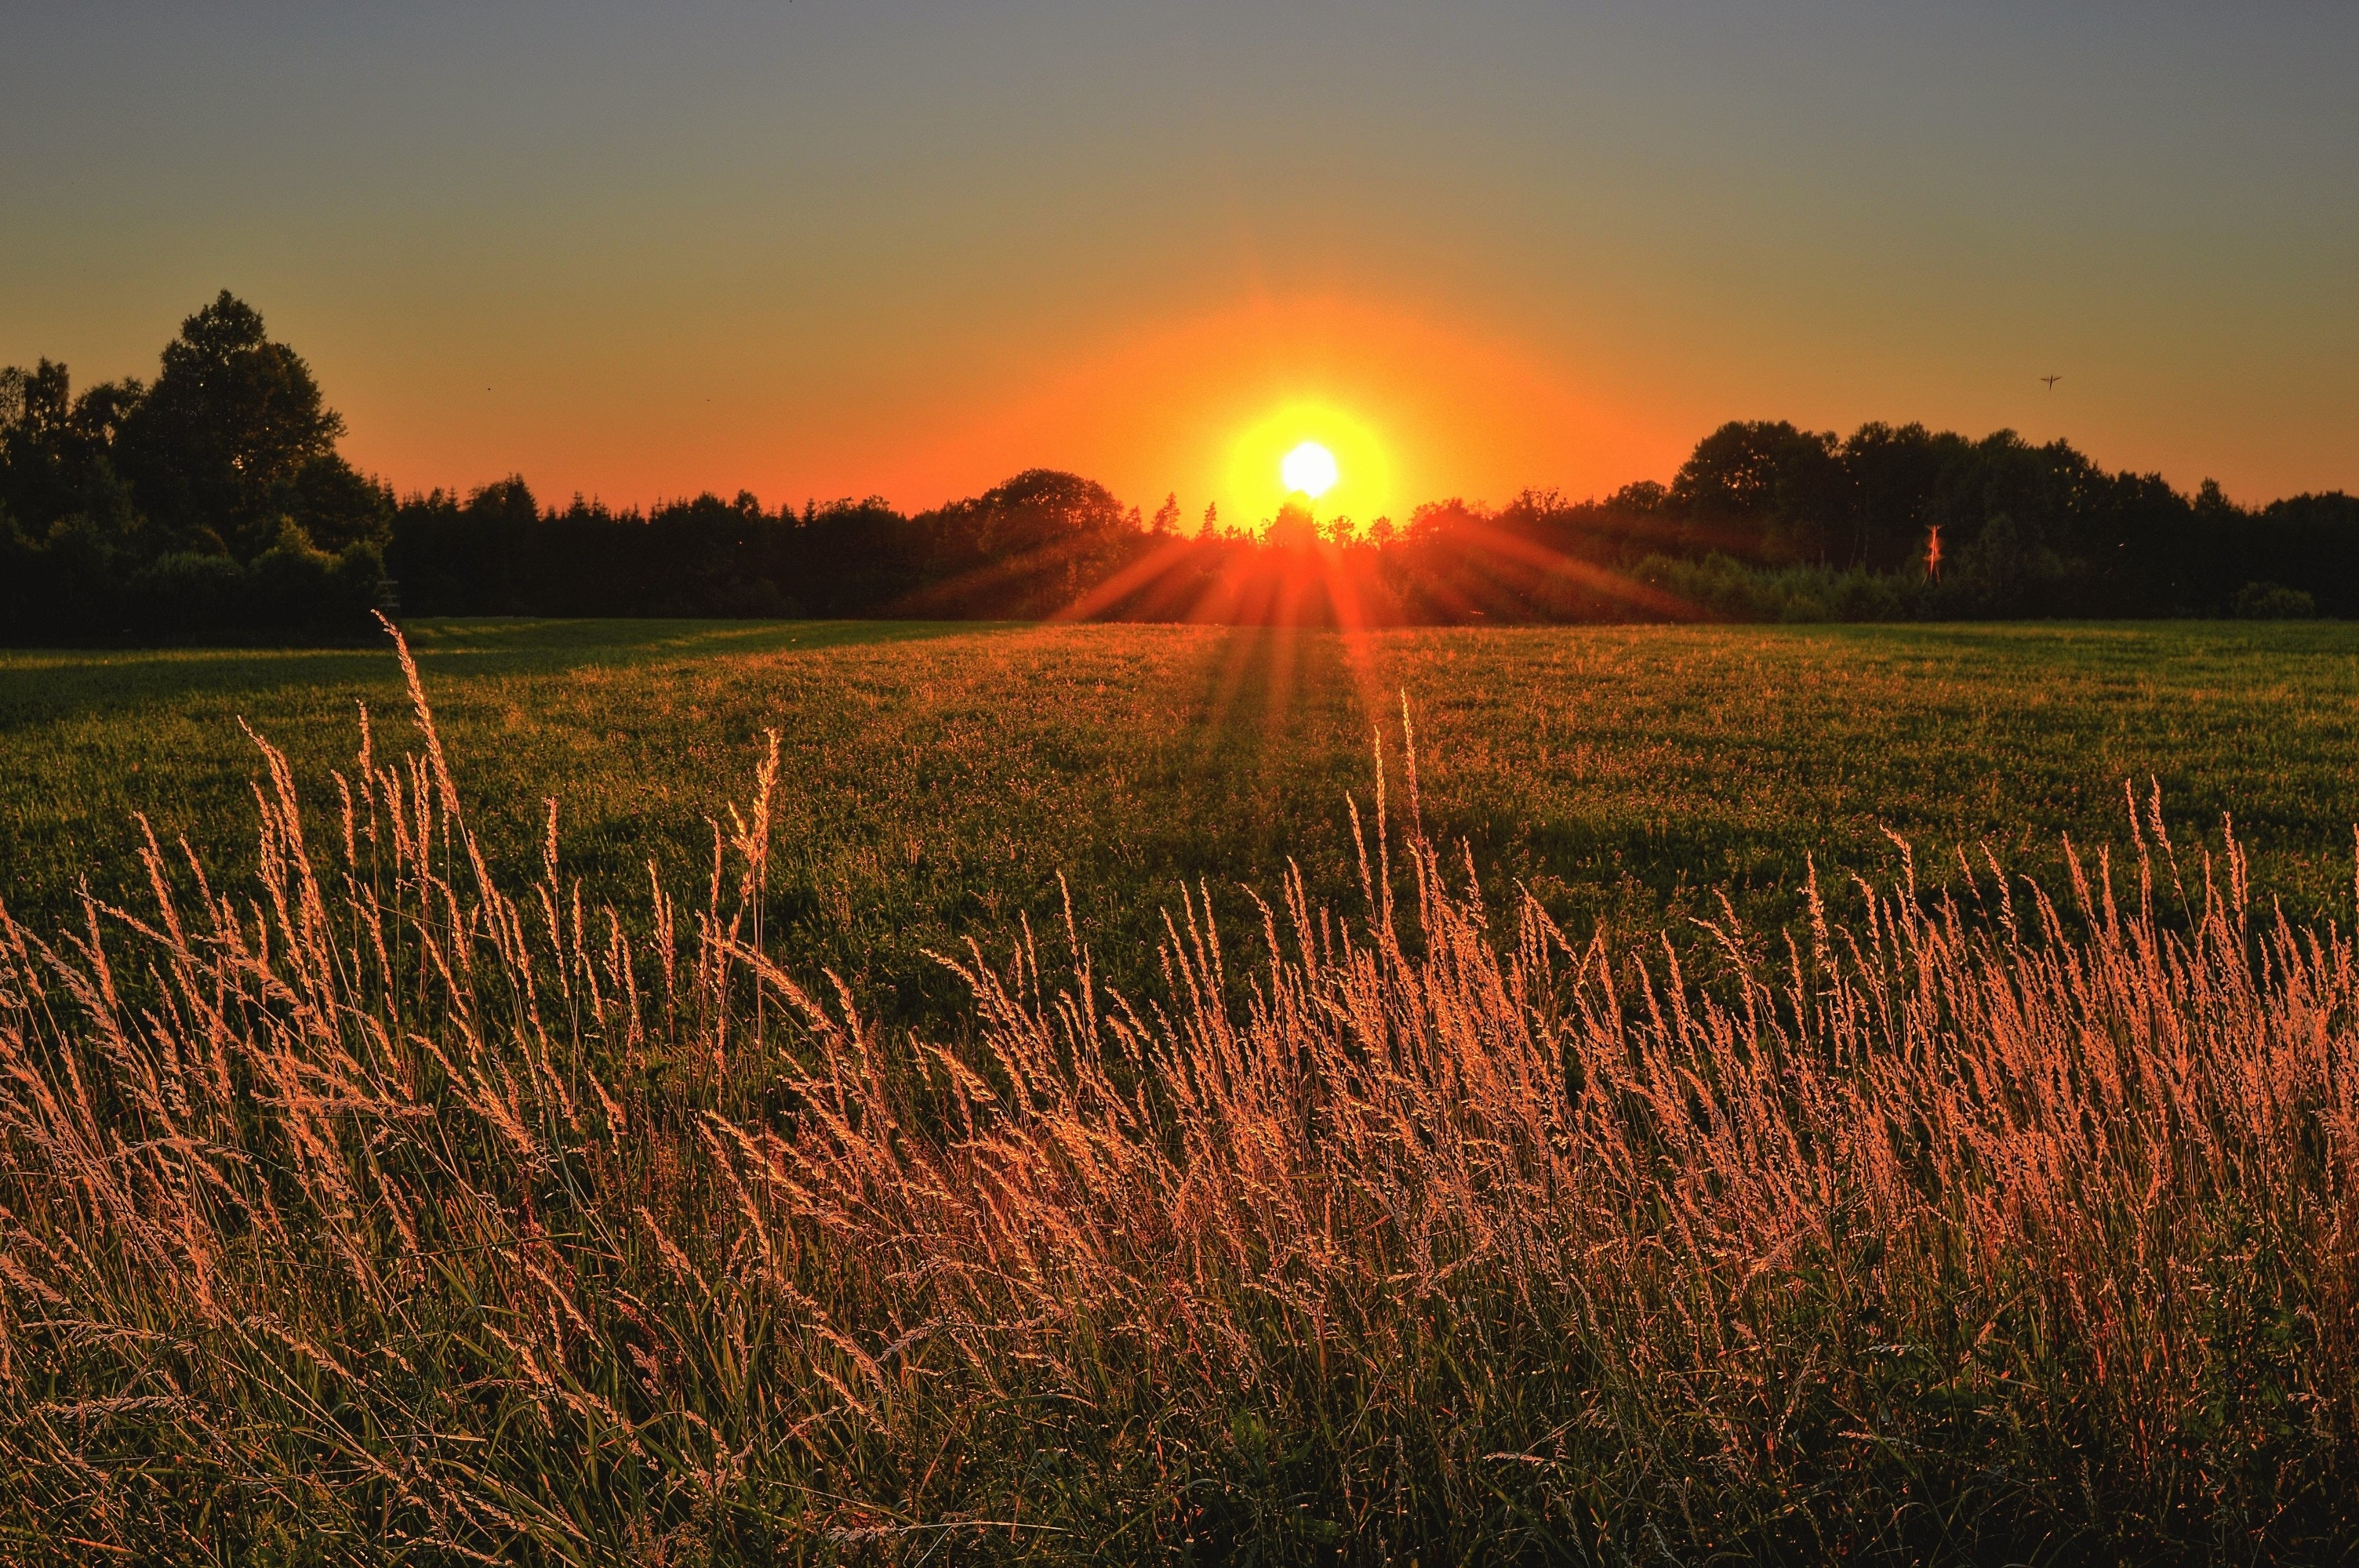 brown-and-green-grass-field-during-sunset-1237119